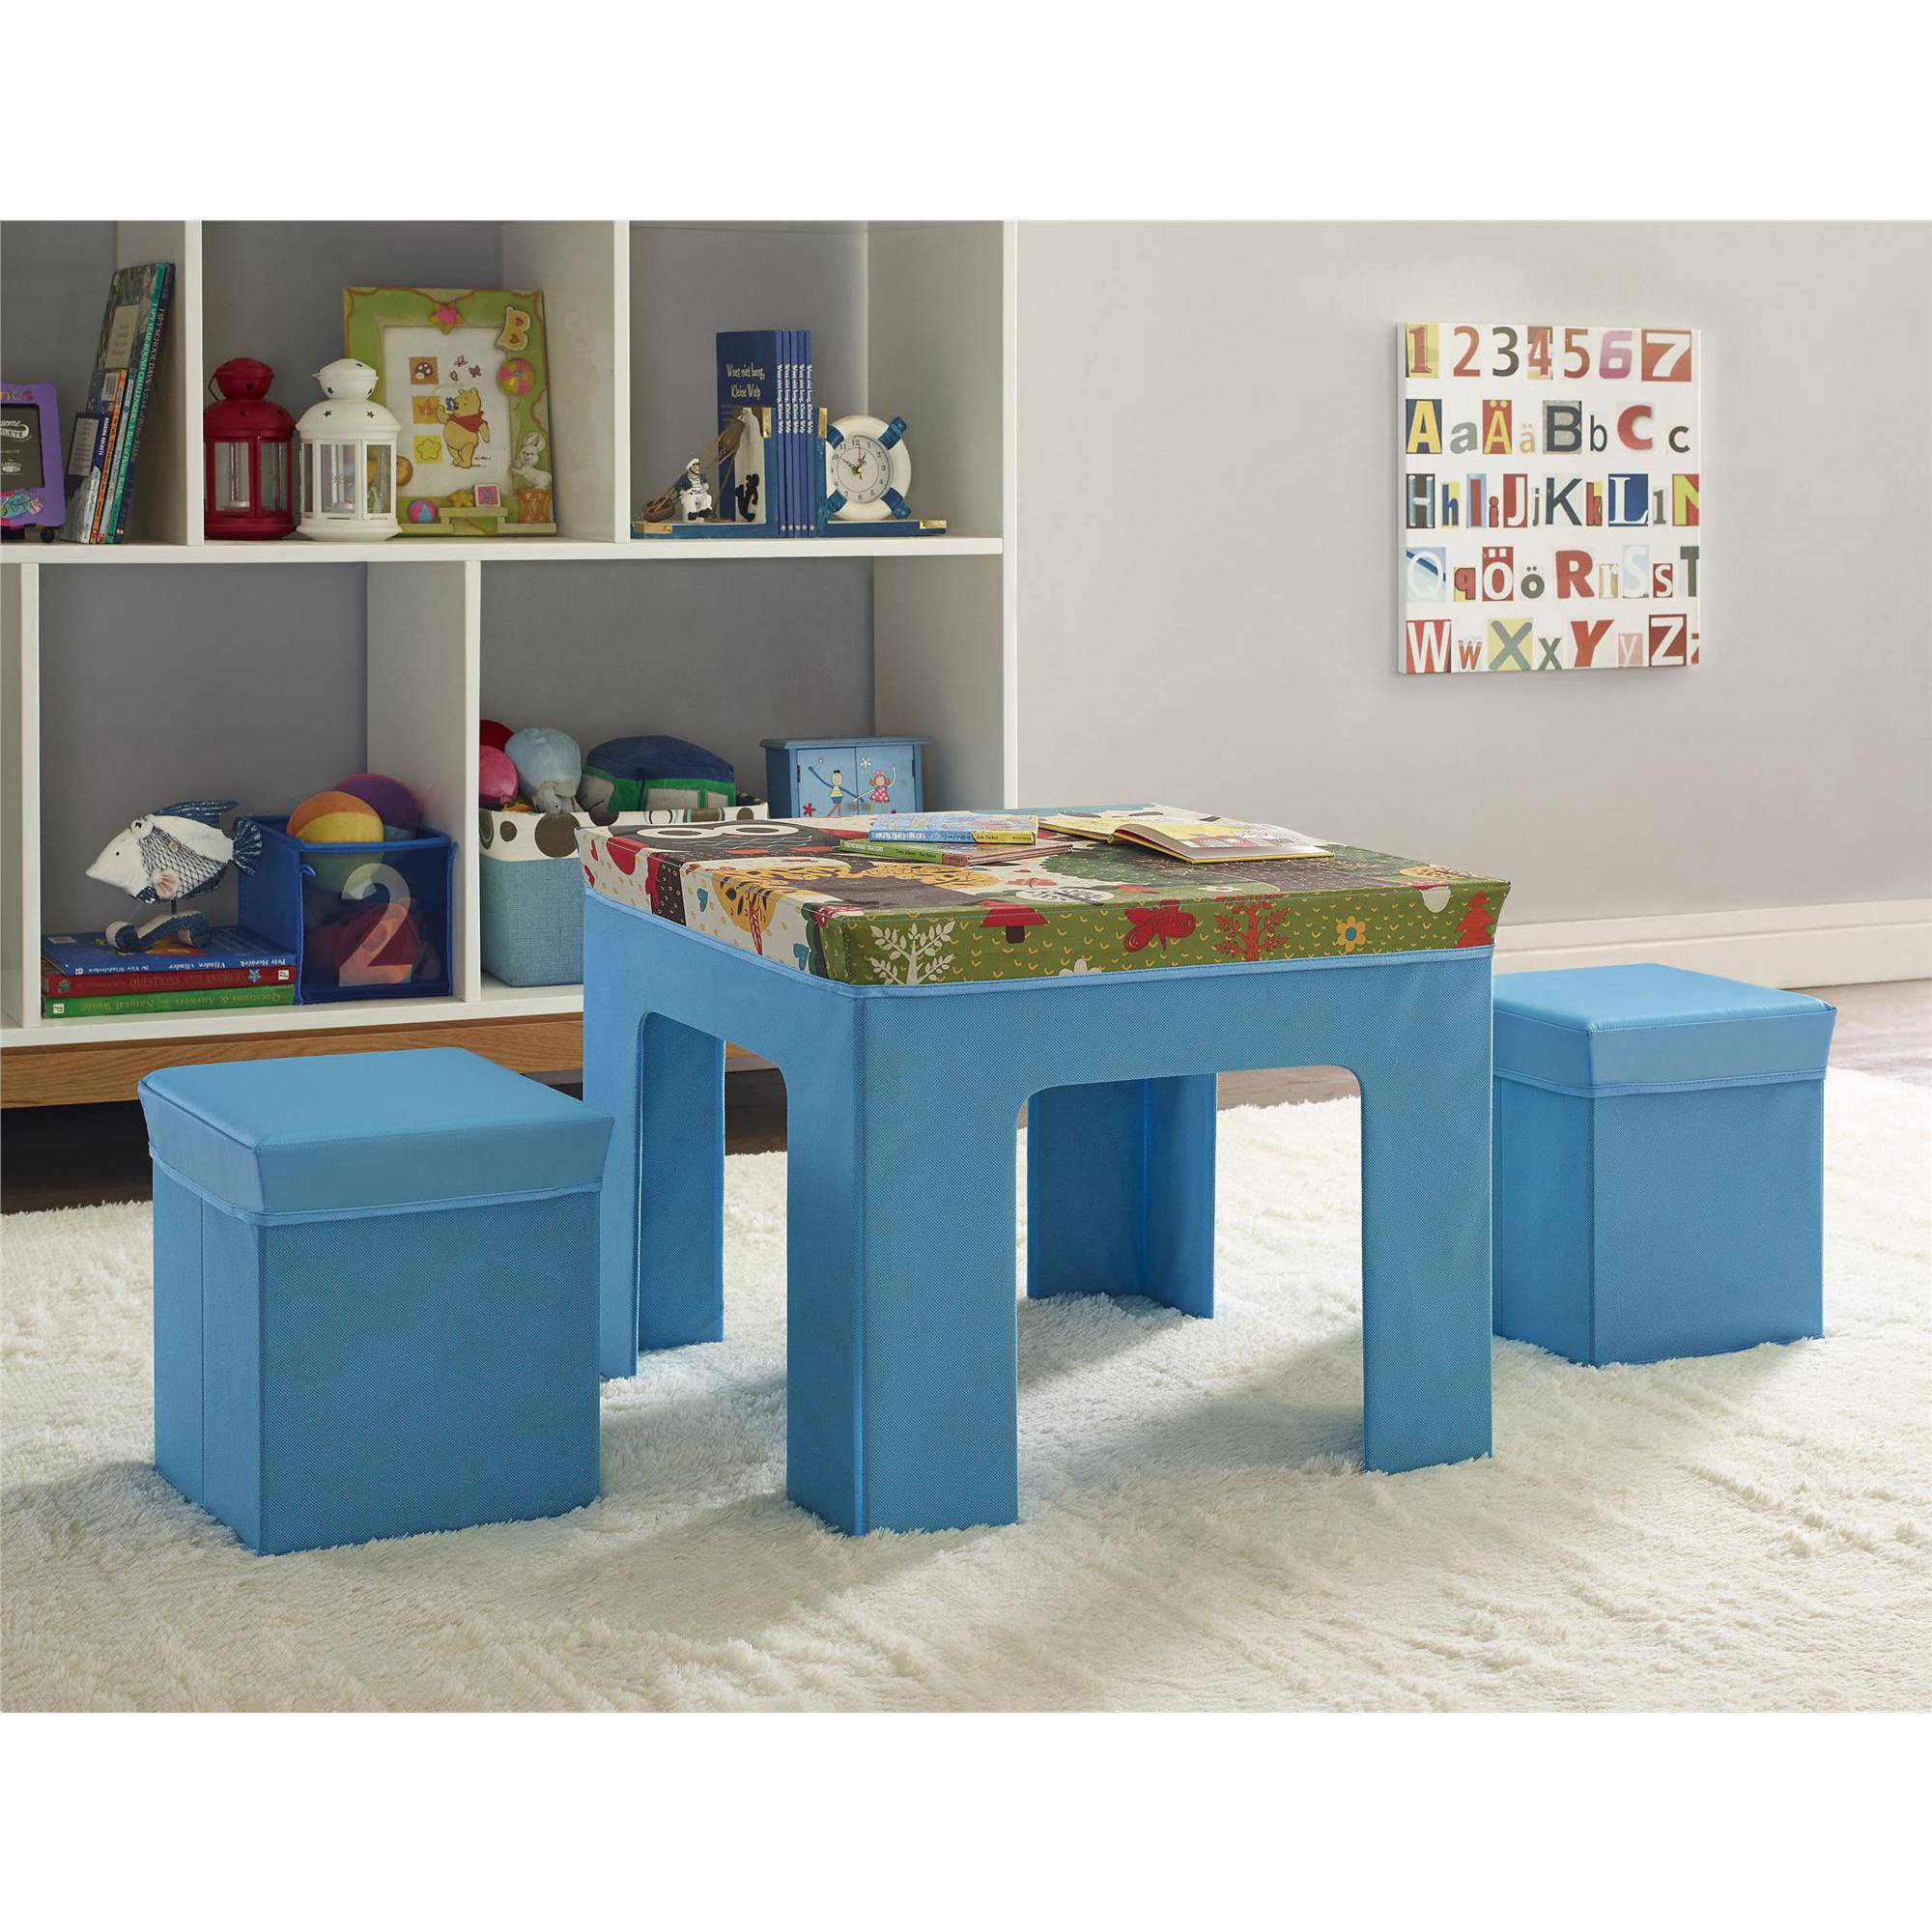 altra kids fabric table and ottoman set with owl pattern blue walmartcom - Kid Table And Chair Set